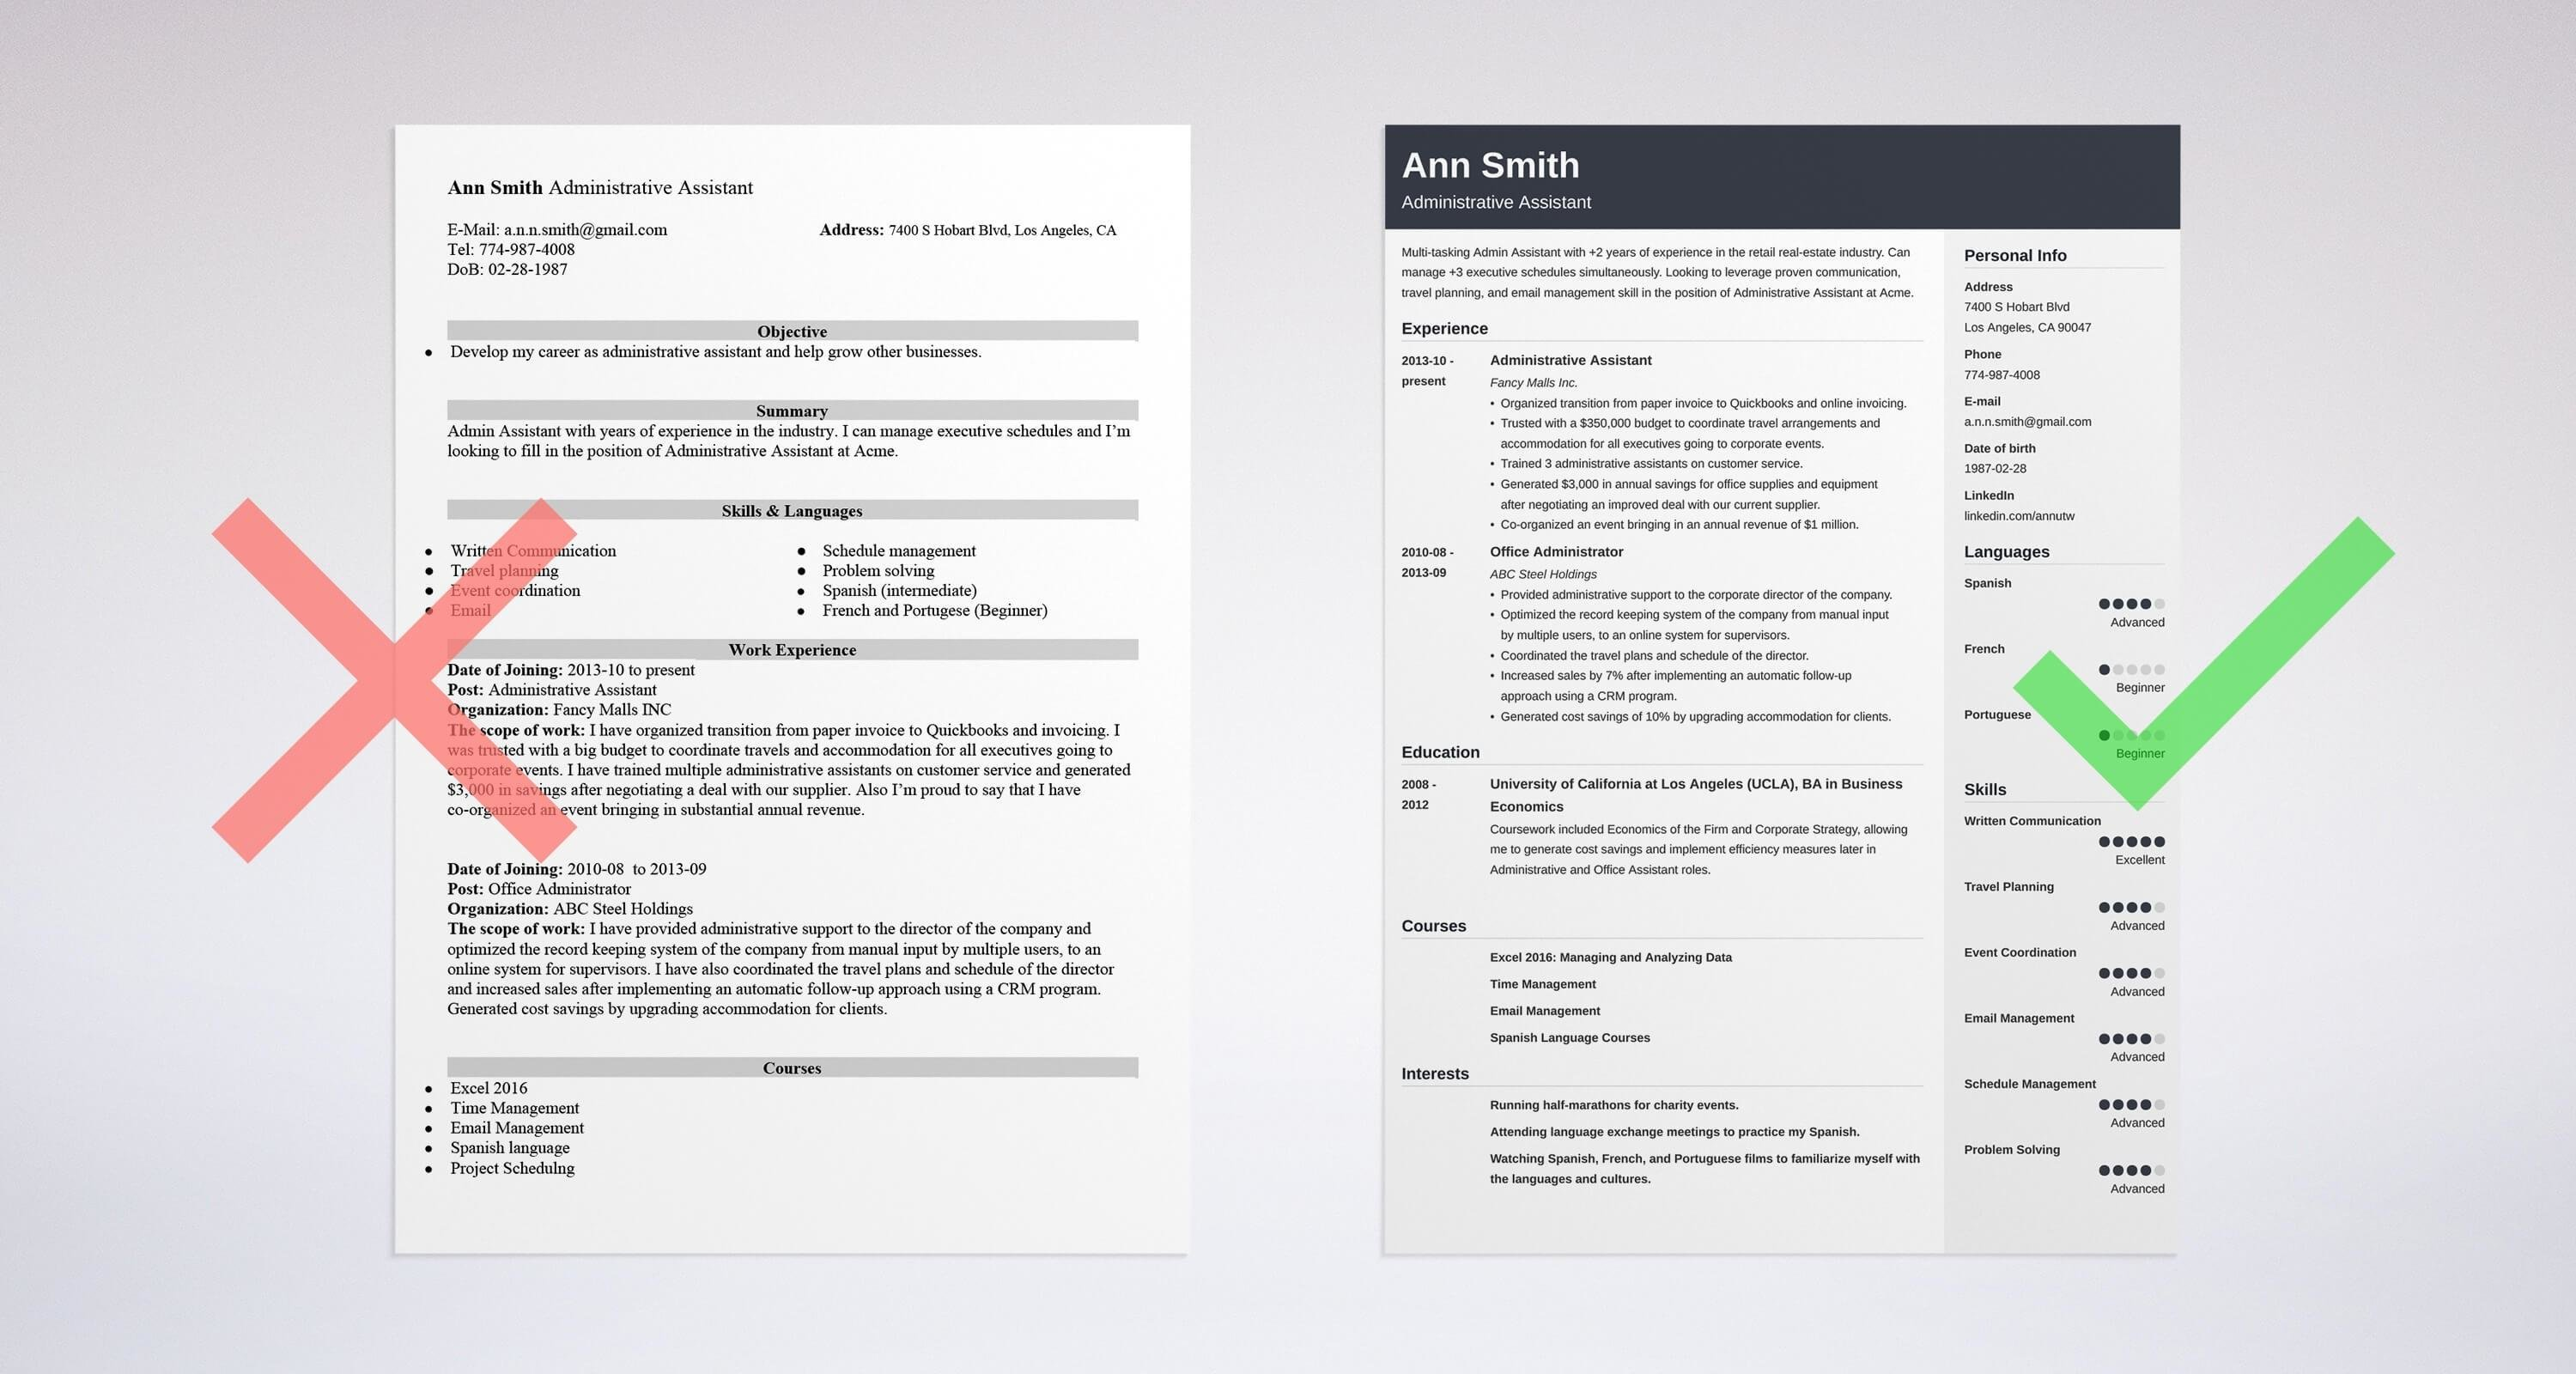 two administrative assistant resume examples administrative assistant resume examples resumes for administrative assistant - Sample Resume Church Administrative Assistant